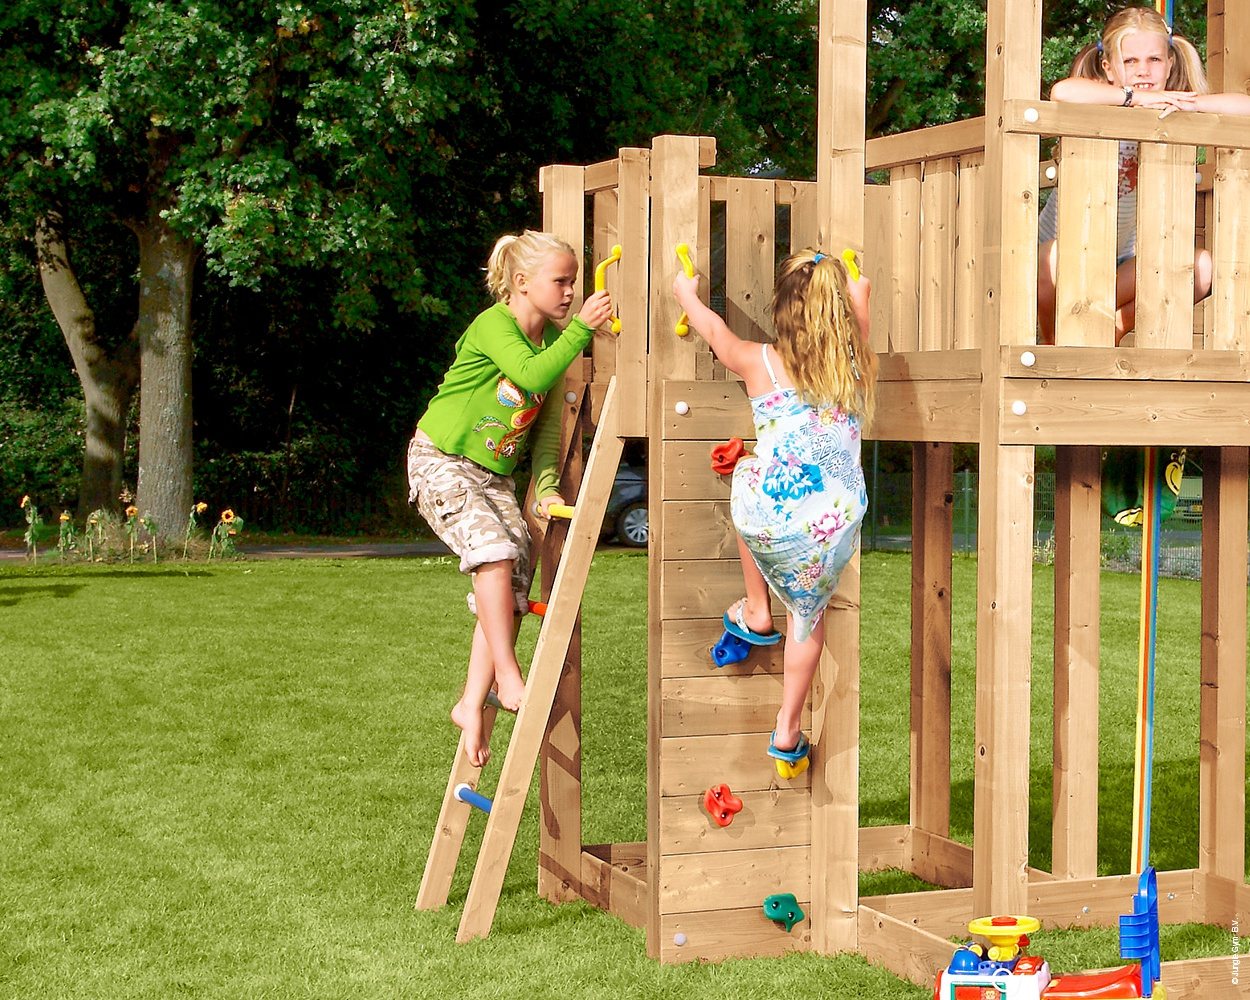 Sprossenleiter Holz Spielturm Mansion Mit Pic Nic Modul Jungle Gym Bowi Ch